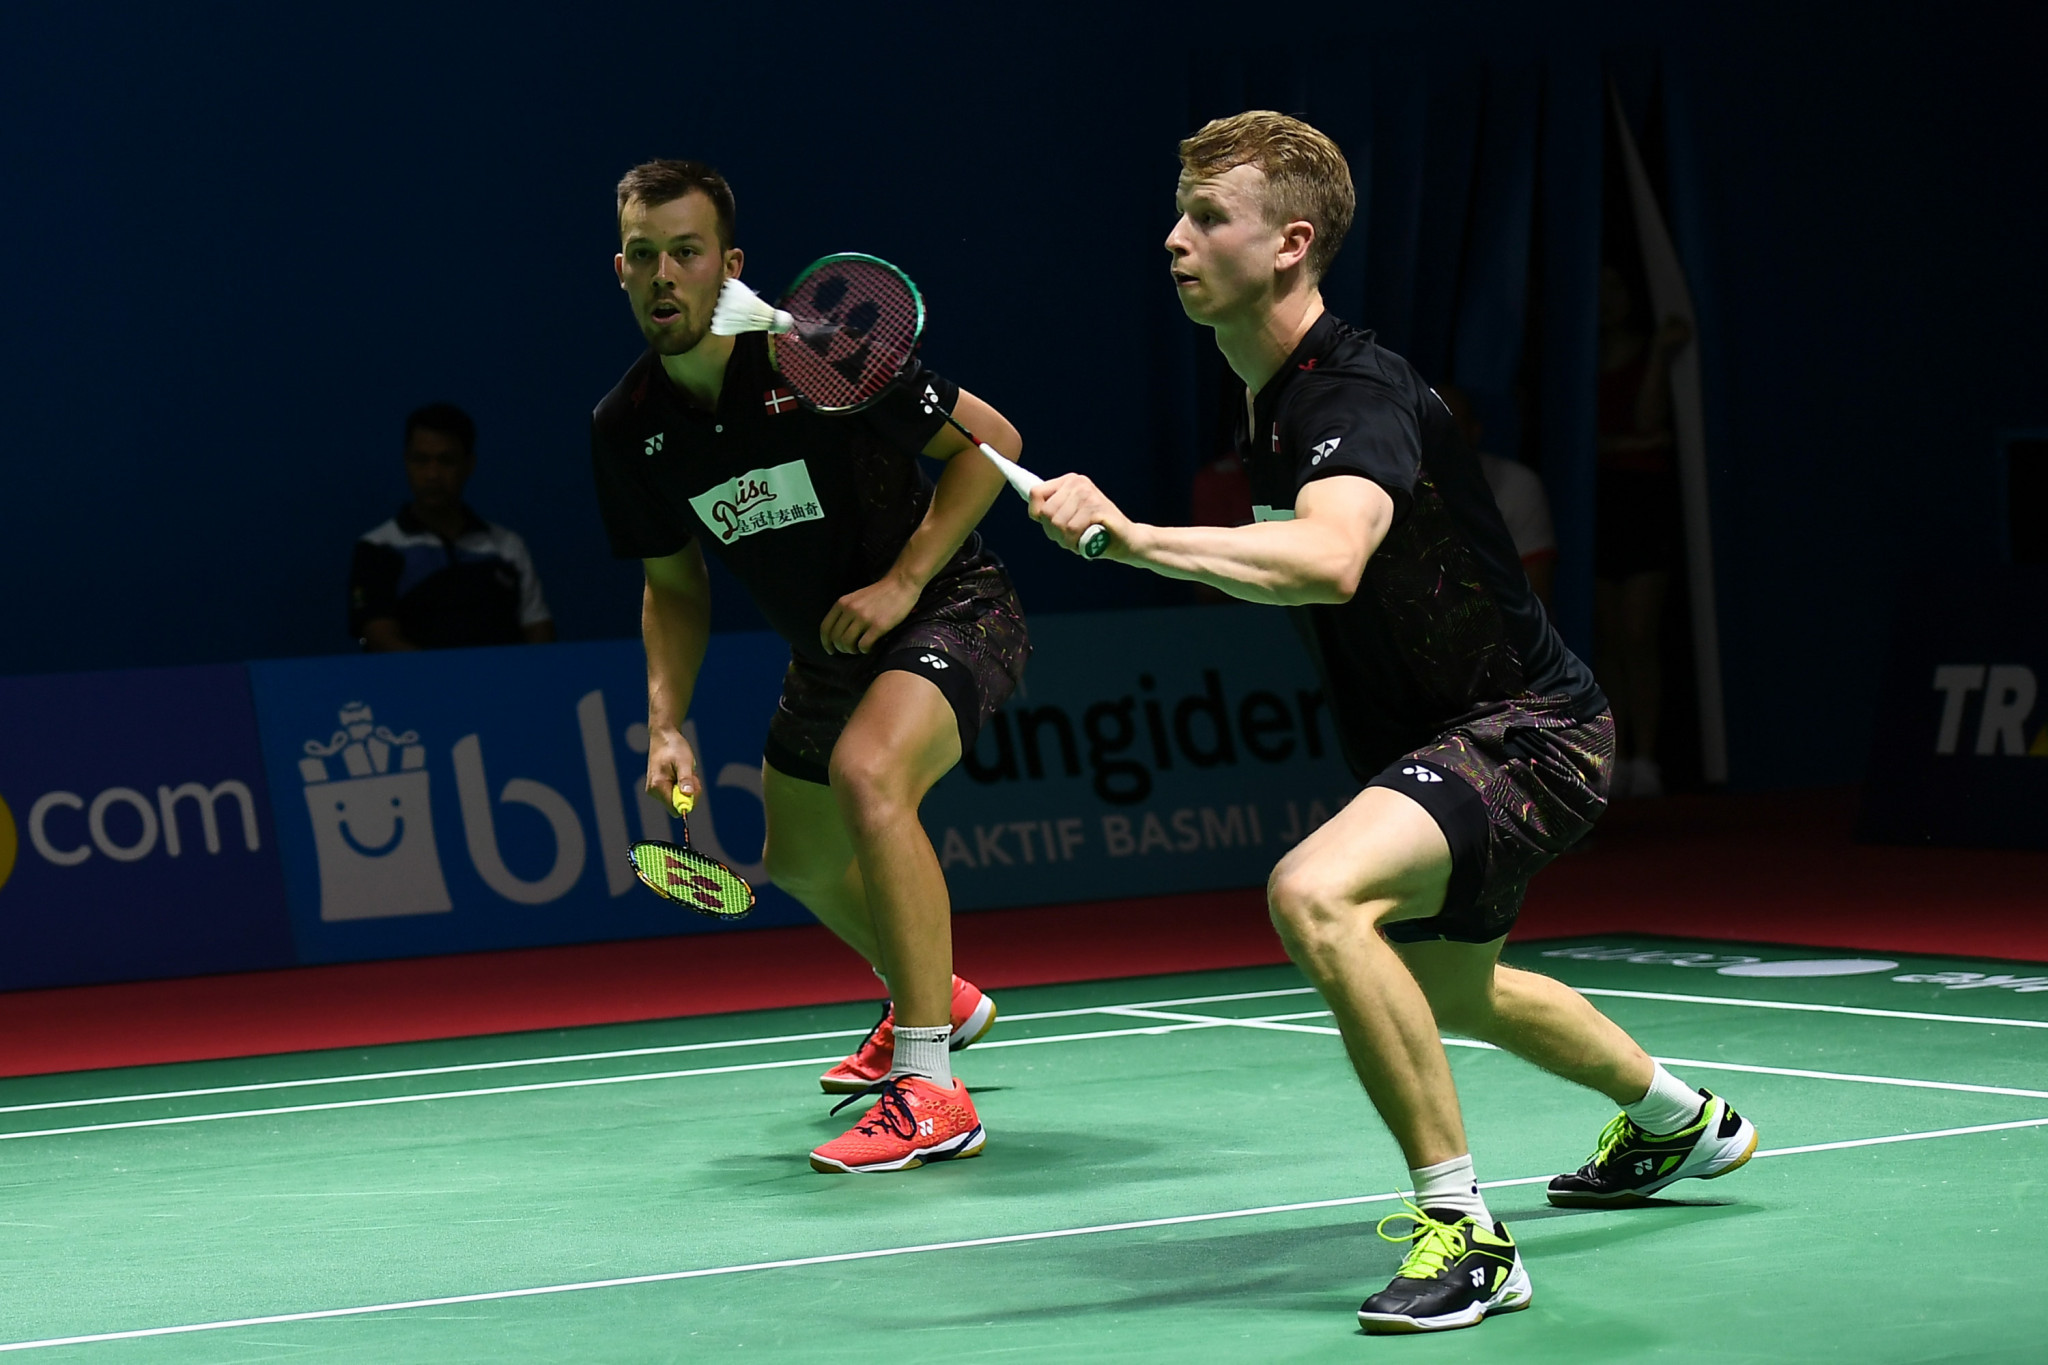 Dominant Denmark retain European Mixed Team Badminton Championship title after thumping France